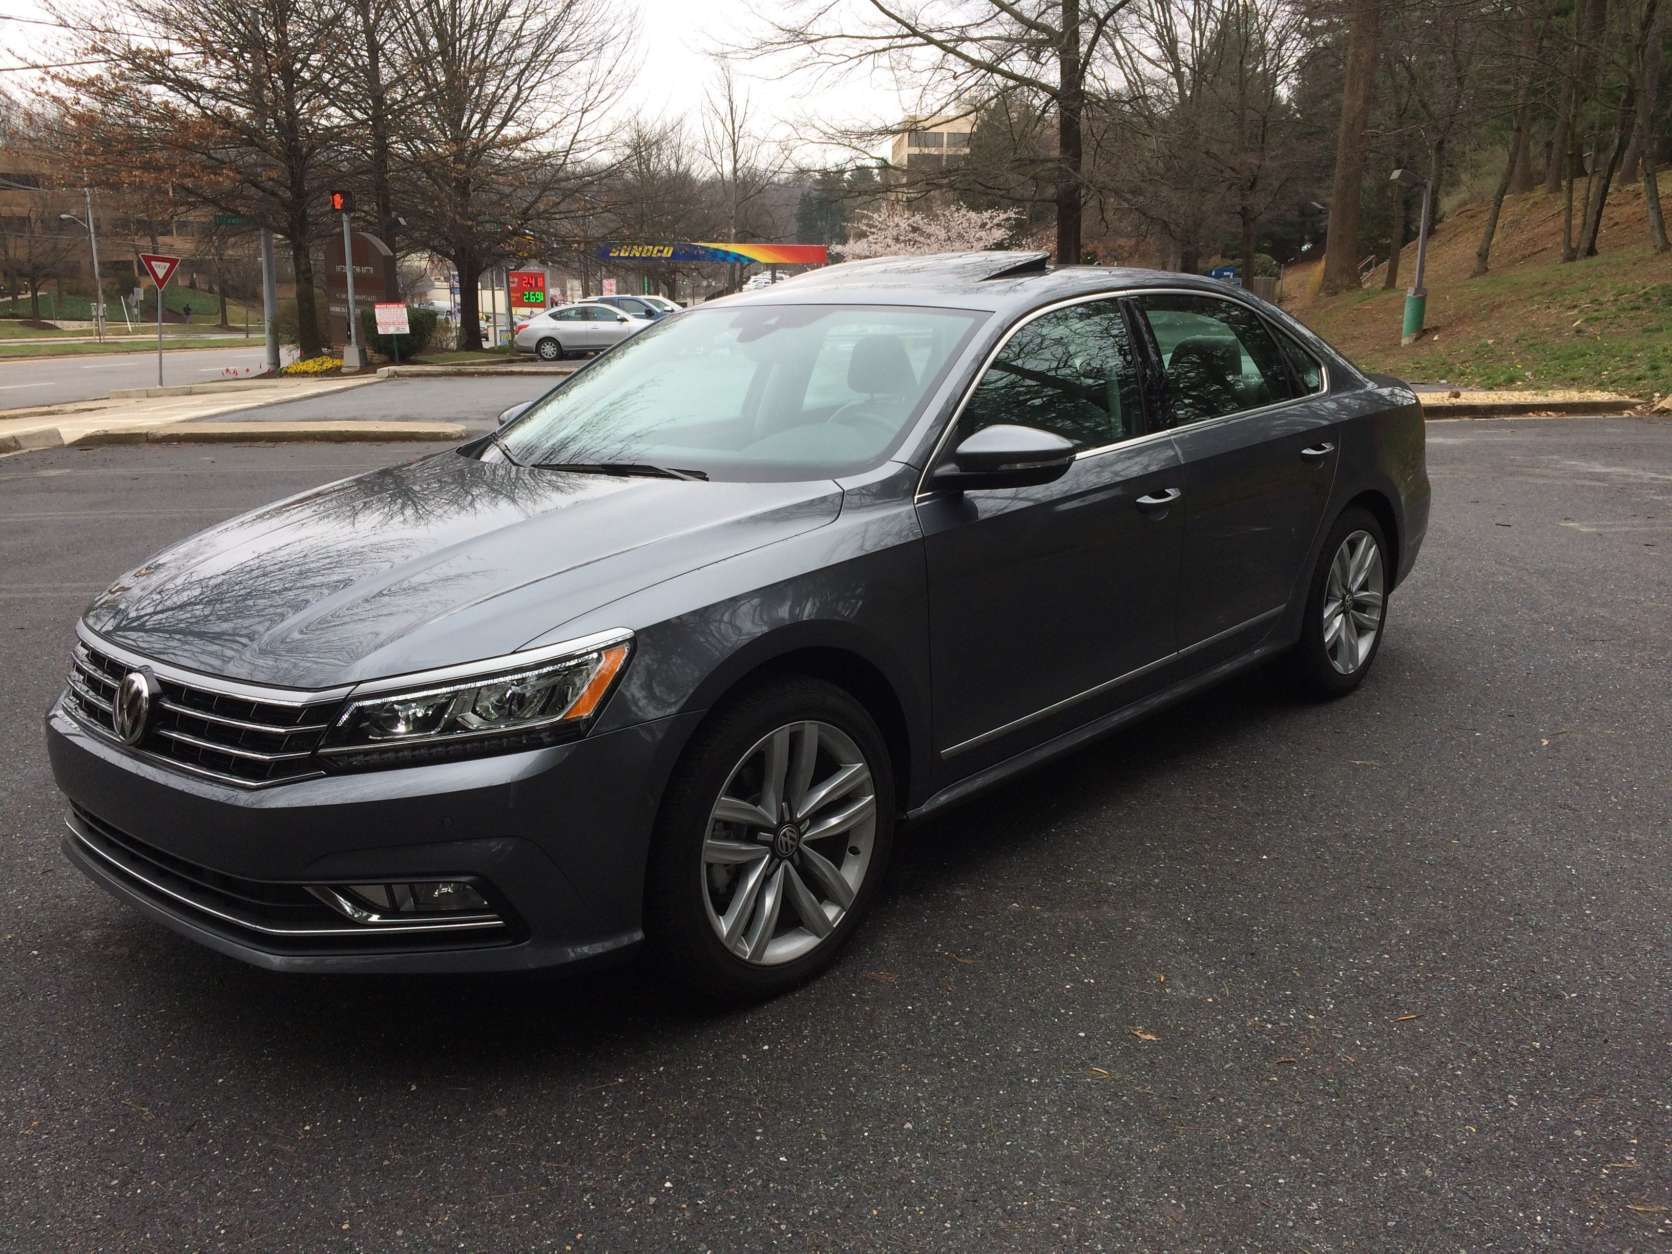 The Passat SEL Premium has adaptive cruise, lane departure warning, lane assist and even autonomous emergency braking. This Passat will even help you park with the Parking Steering Assistant. (WTOP/Mike Parris)